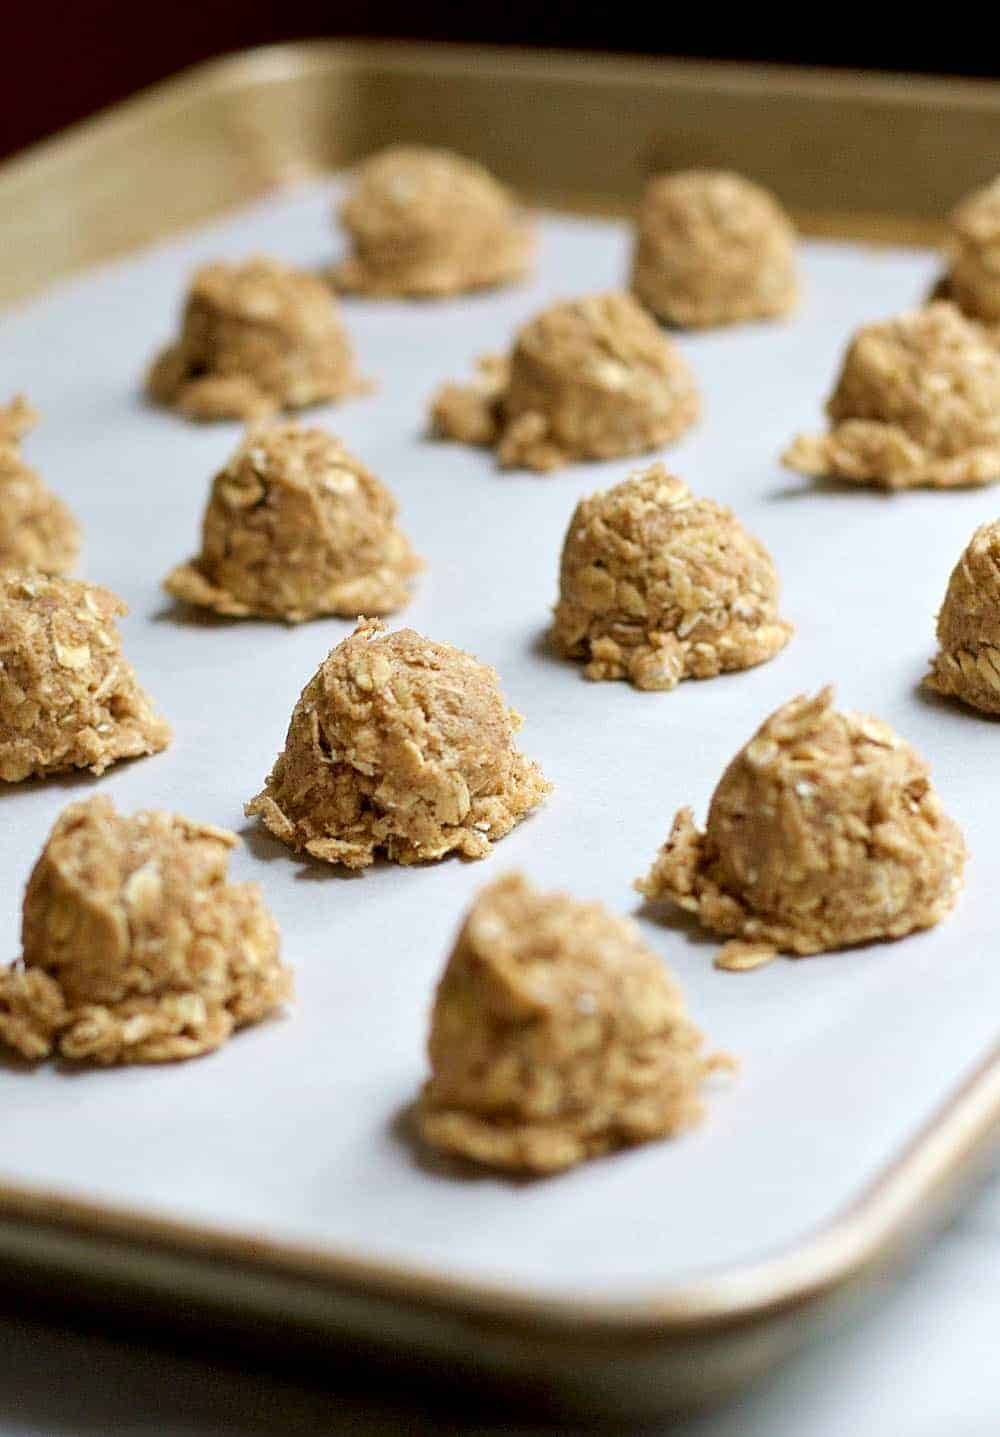 Oatmeal Cookies Ready to Bake